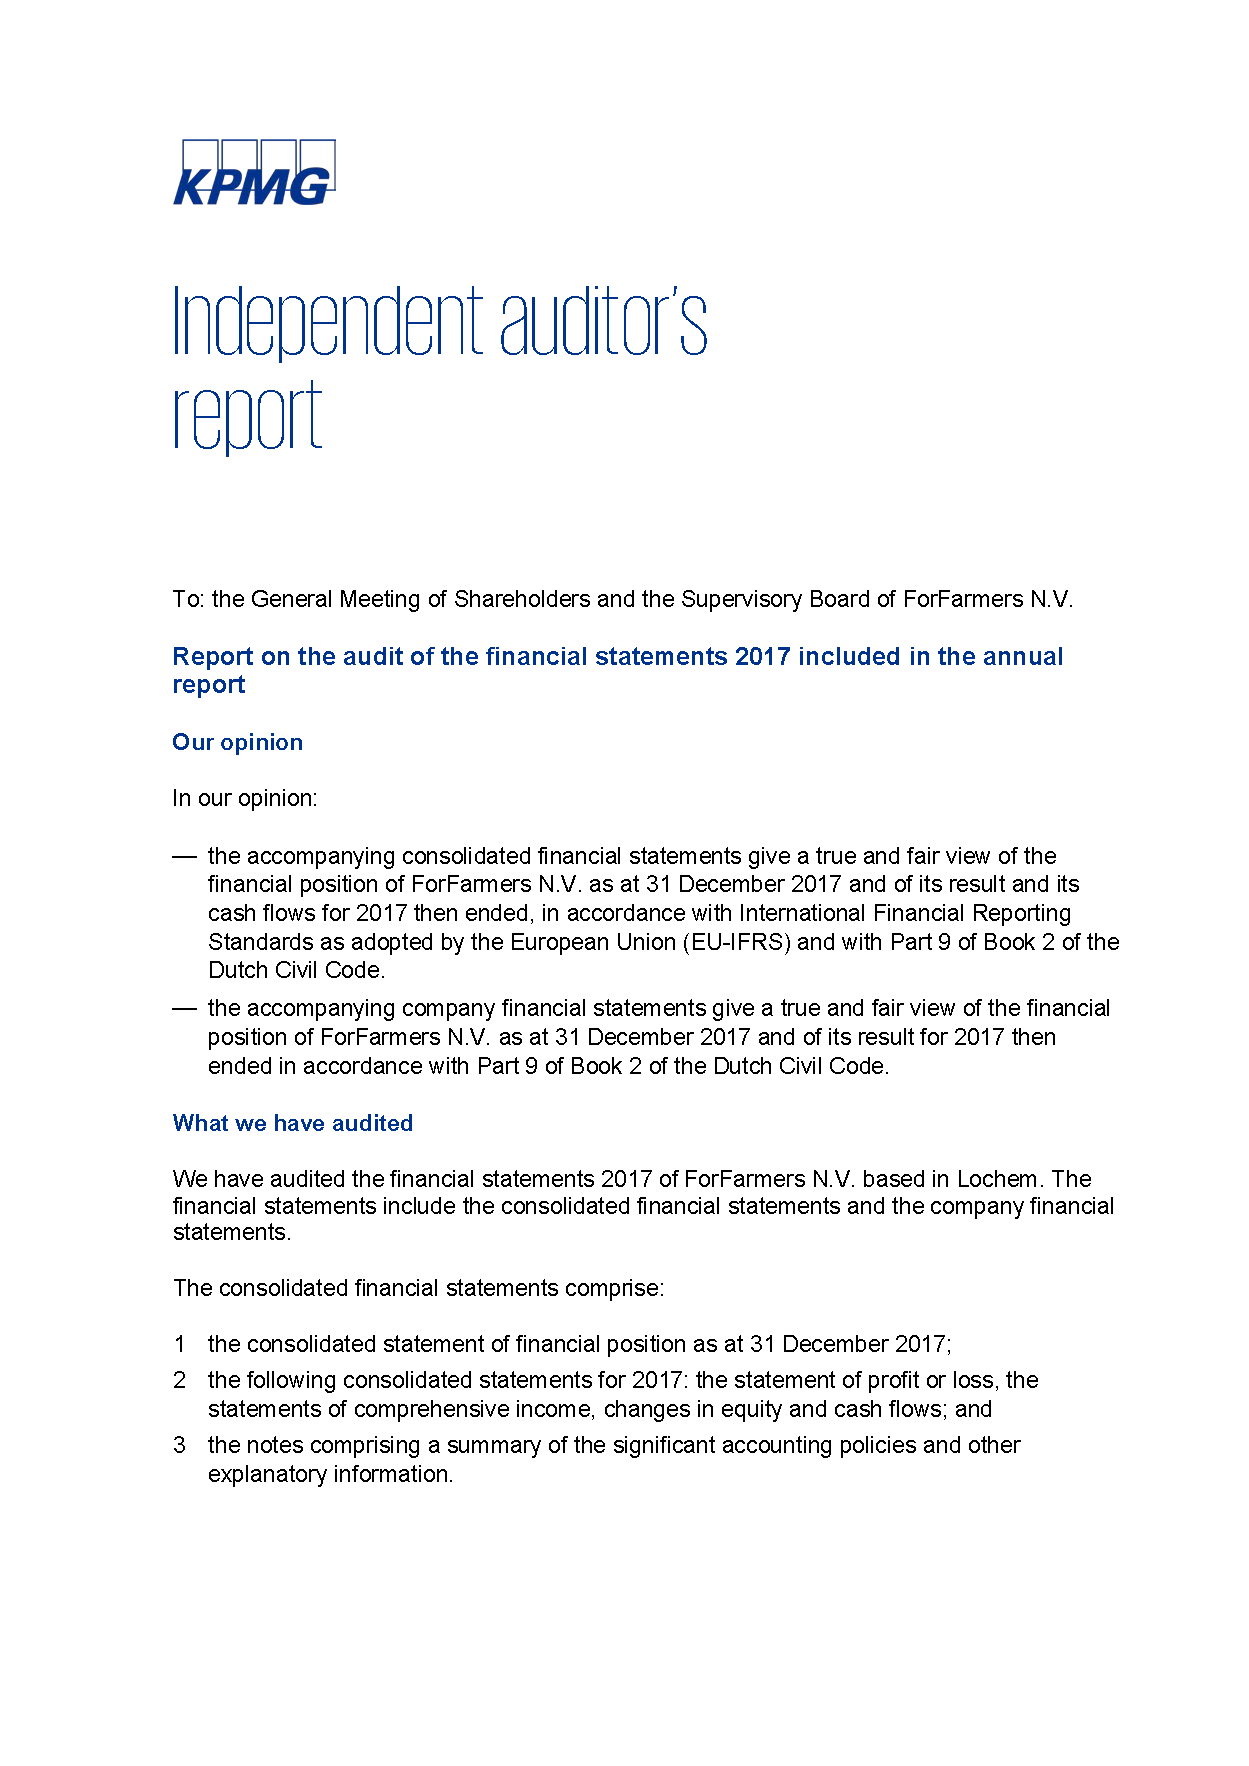 Forfarmers annual report 2017 254 independent auditors report independent auditors report altavistaventures Image collections